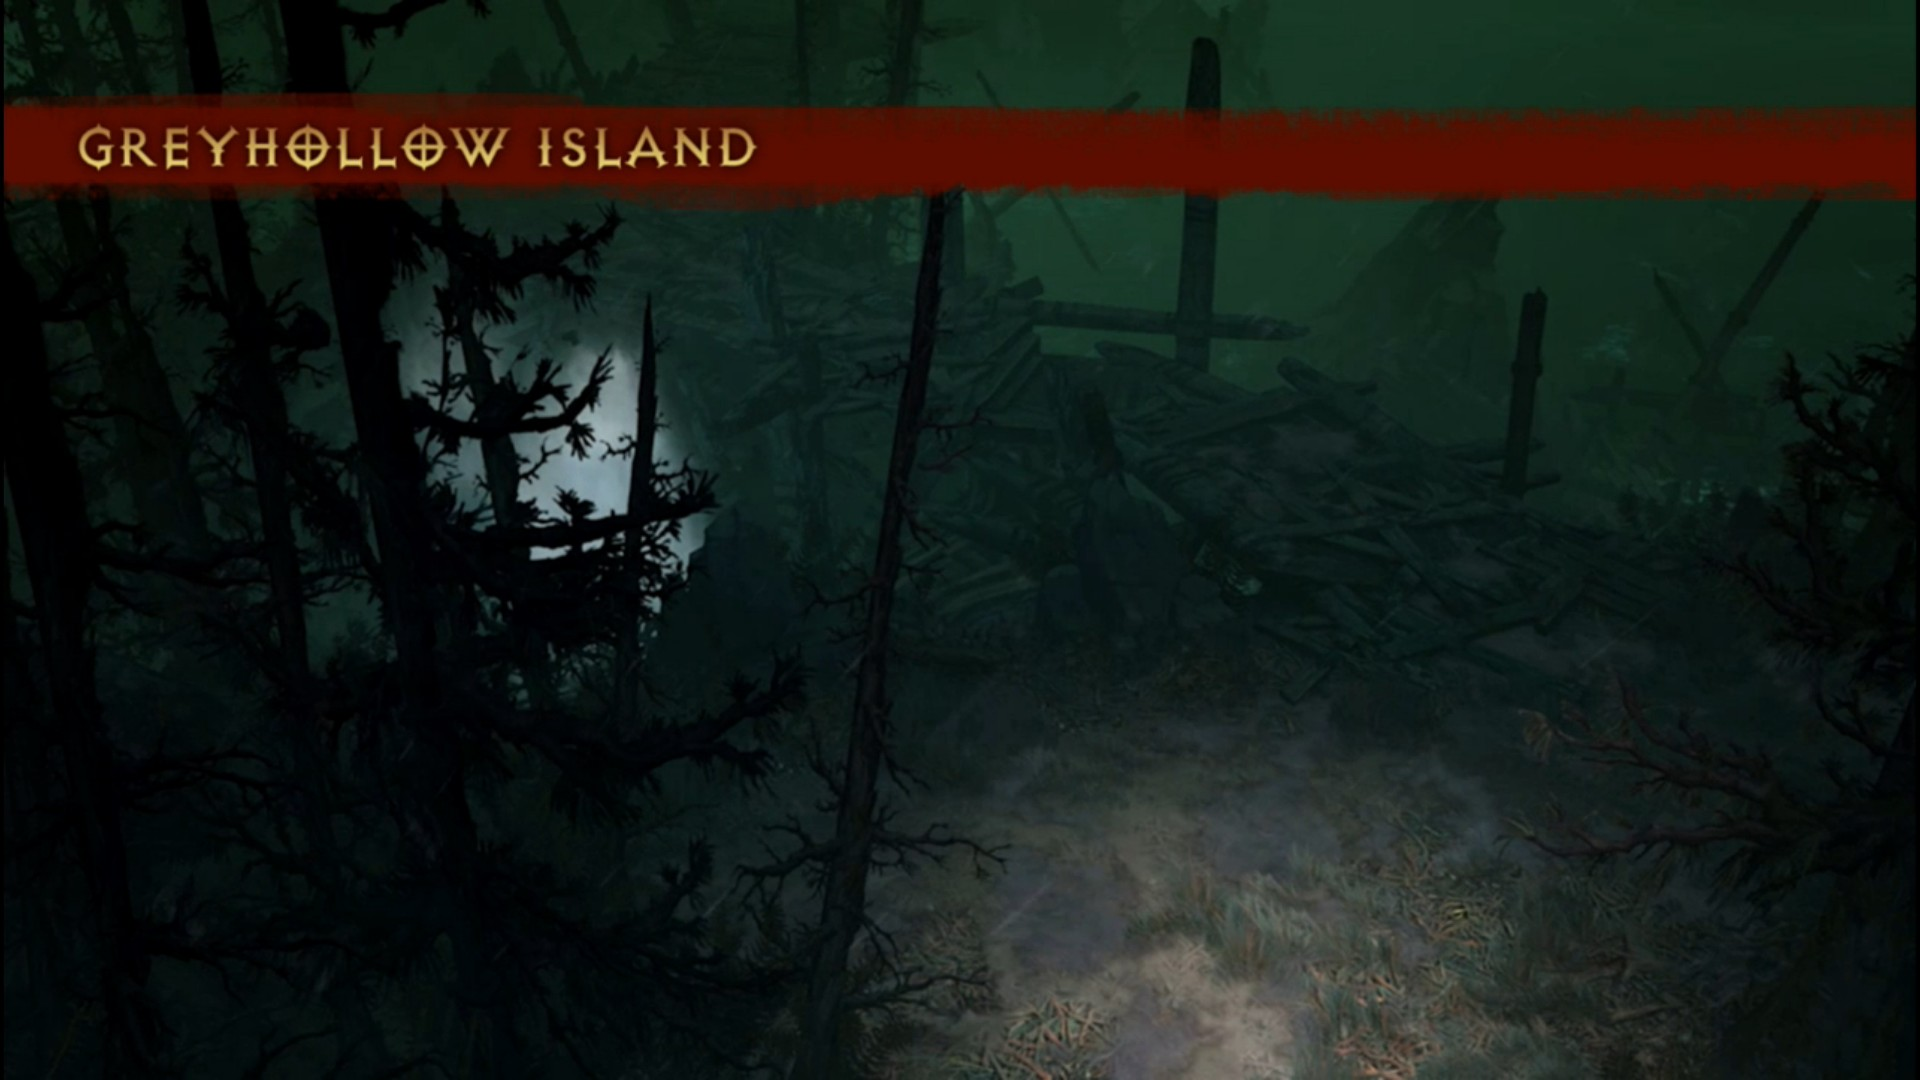 greyhollow-island-preview.jpg